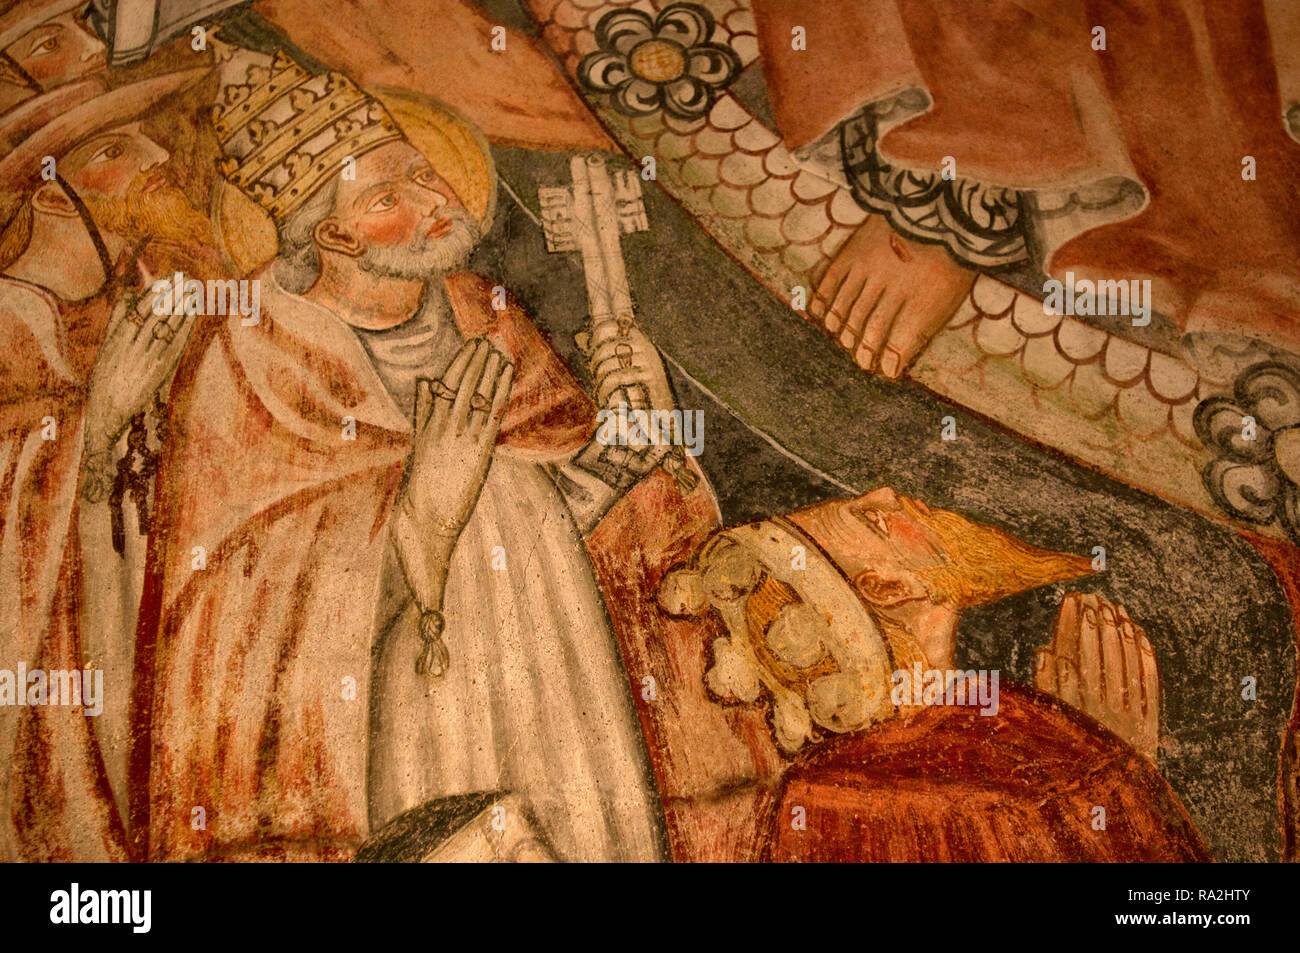 A middle ages Fresco on the wall of Briandate church (Novara, northern Italy) - Stock Image